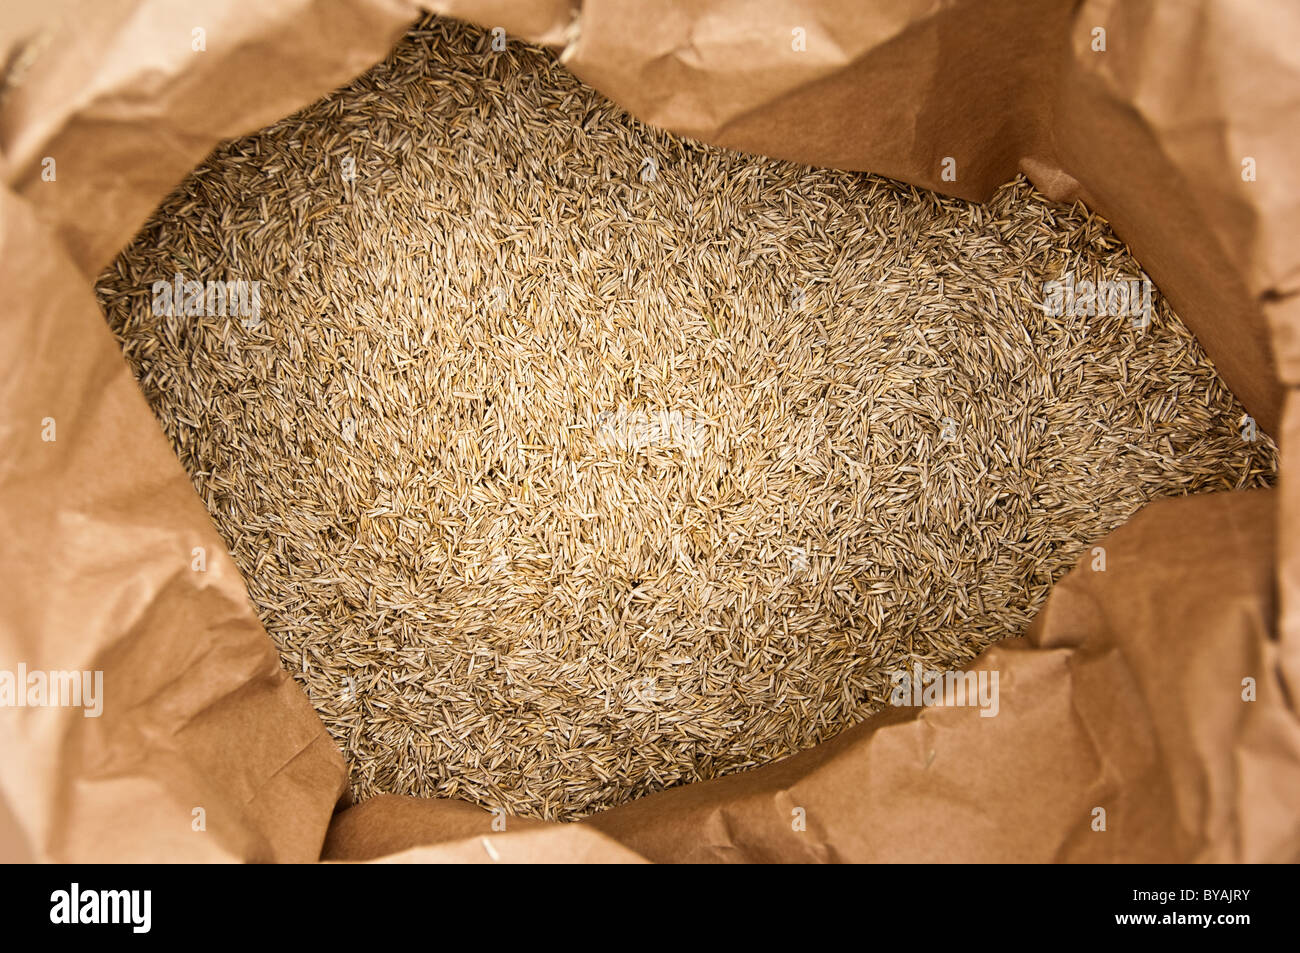 close up of seed in bag - Stock Image